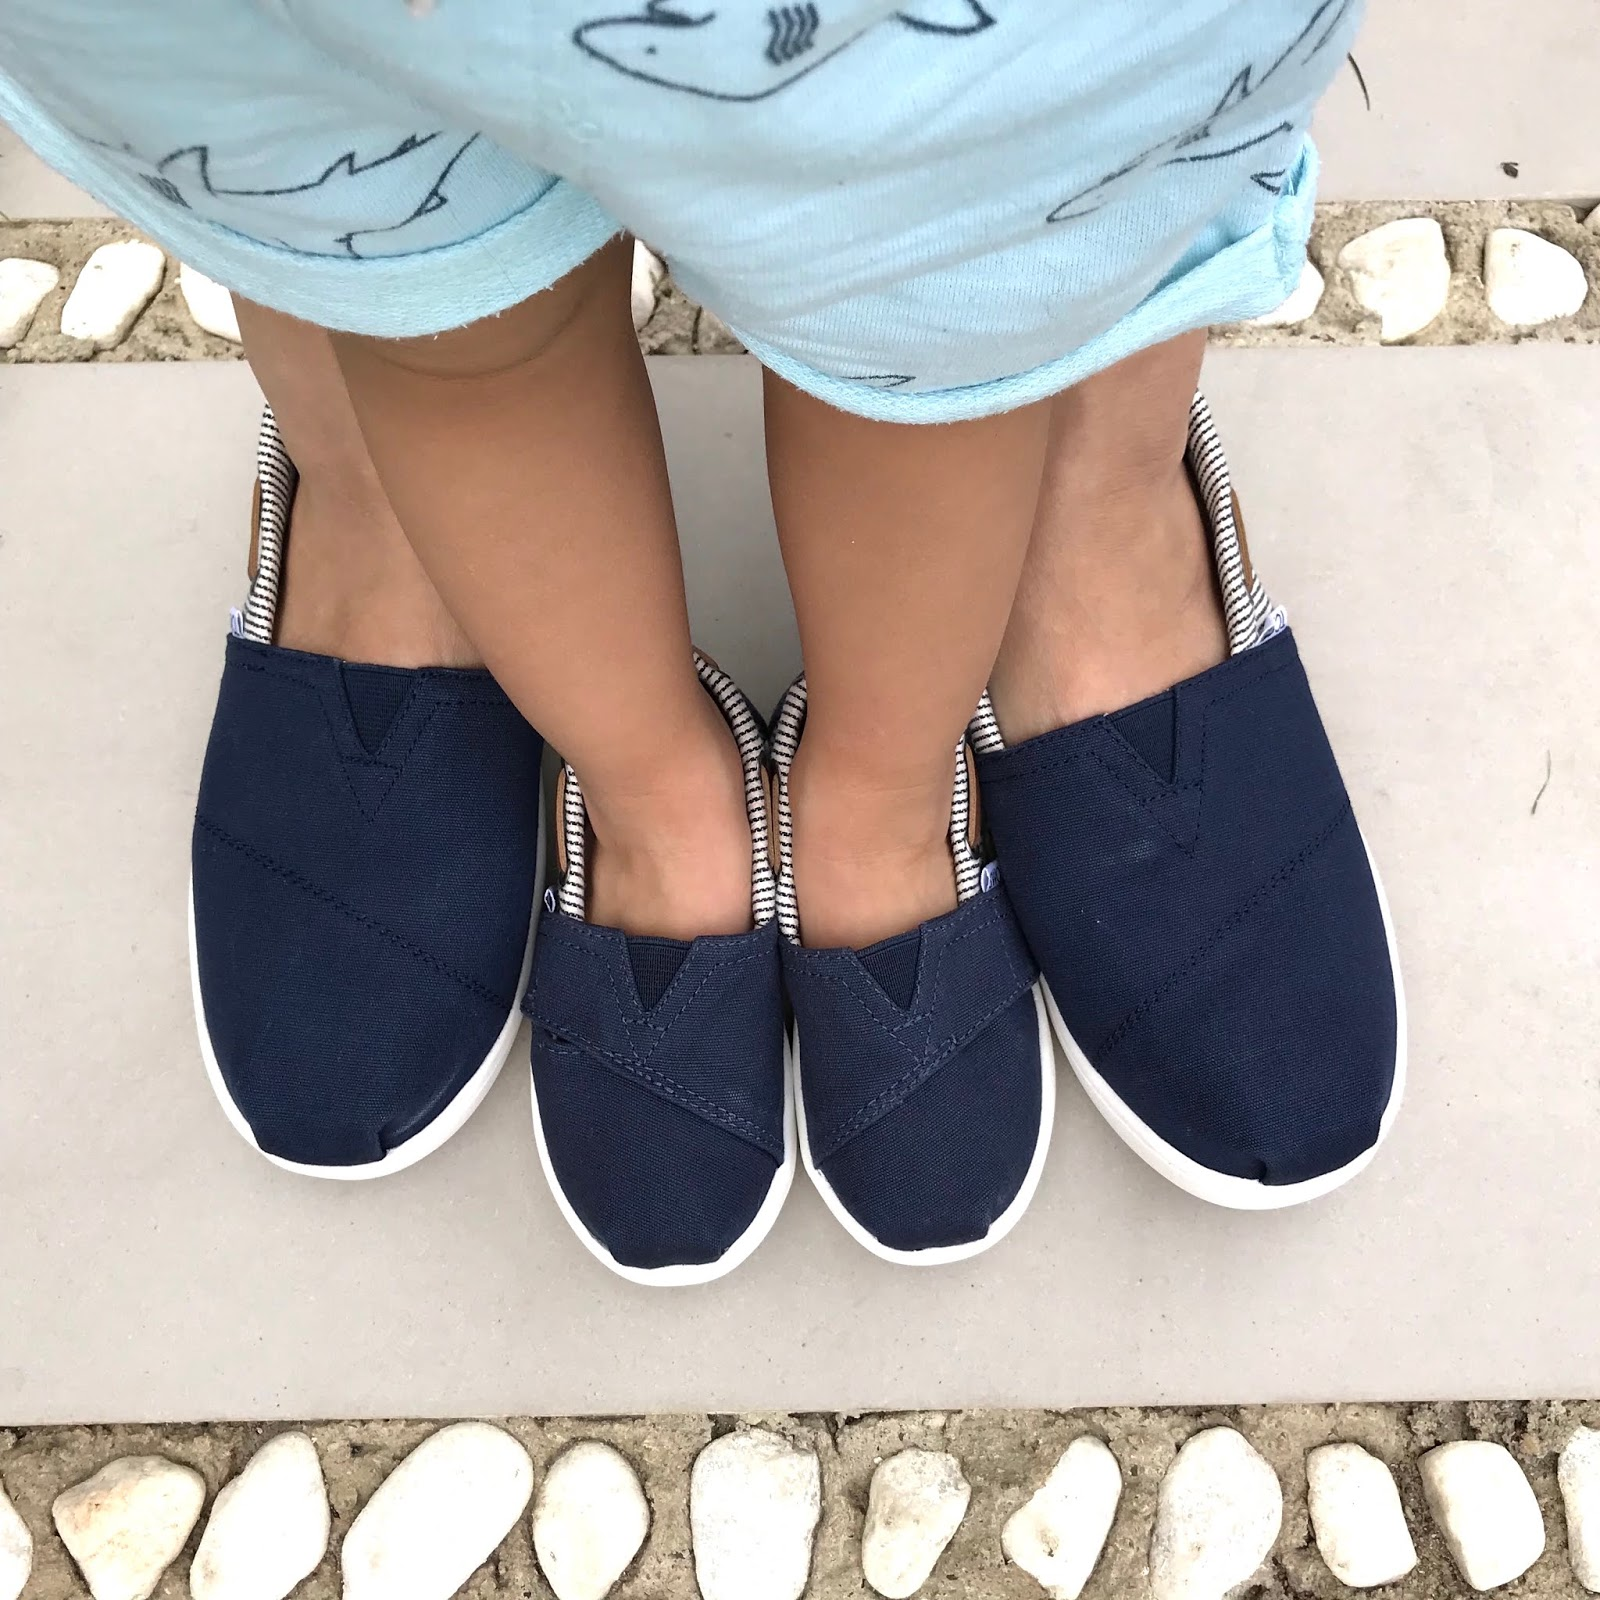 Toddler-Mini-Haul-Toms-Espadrilles